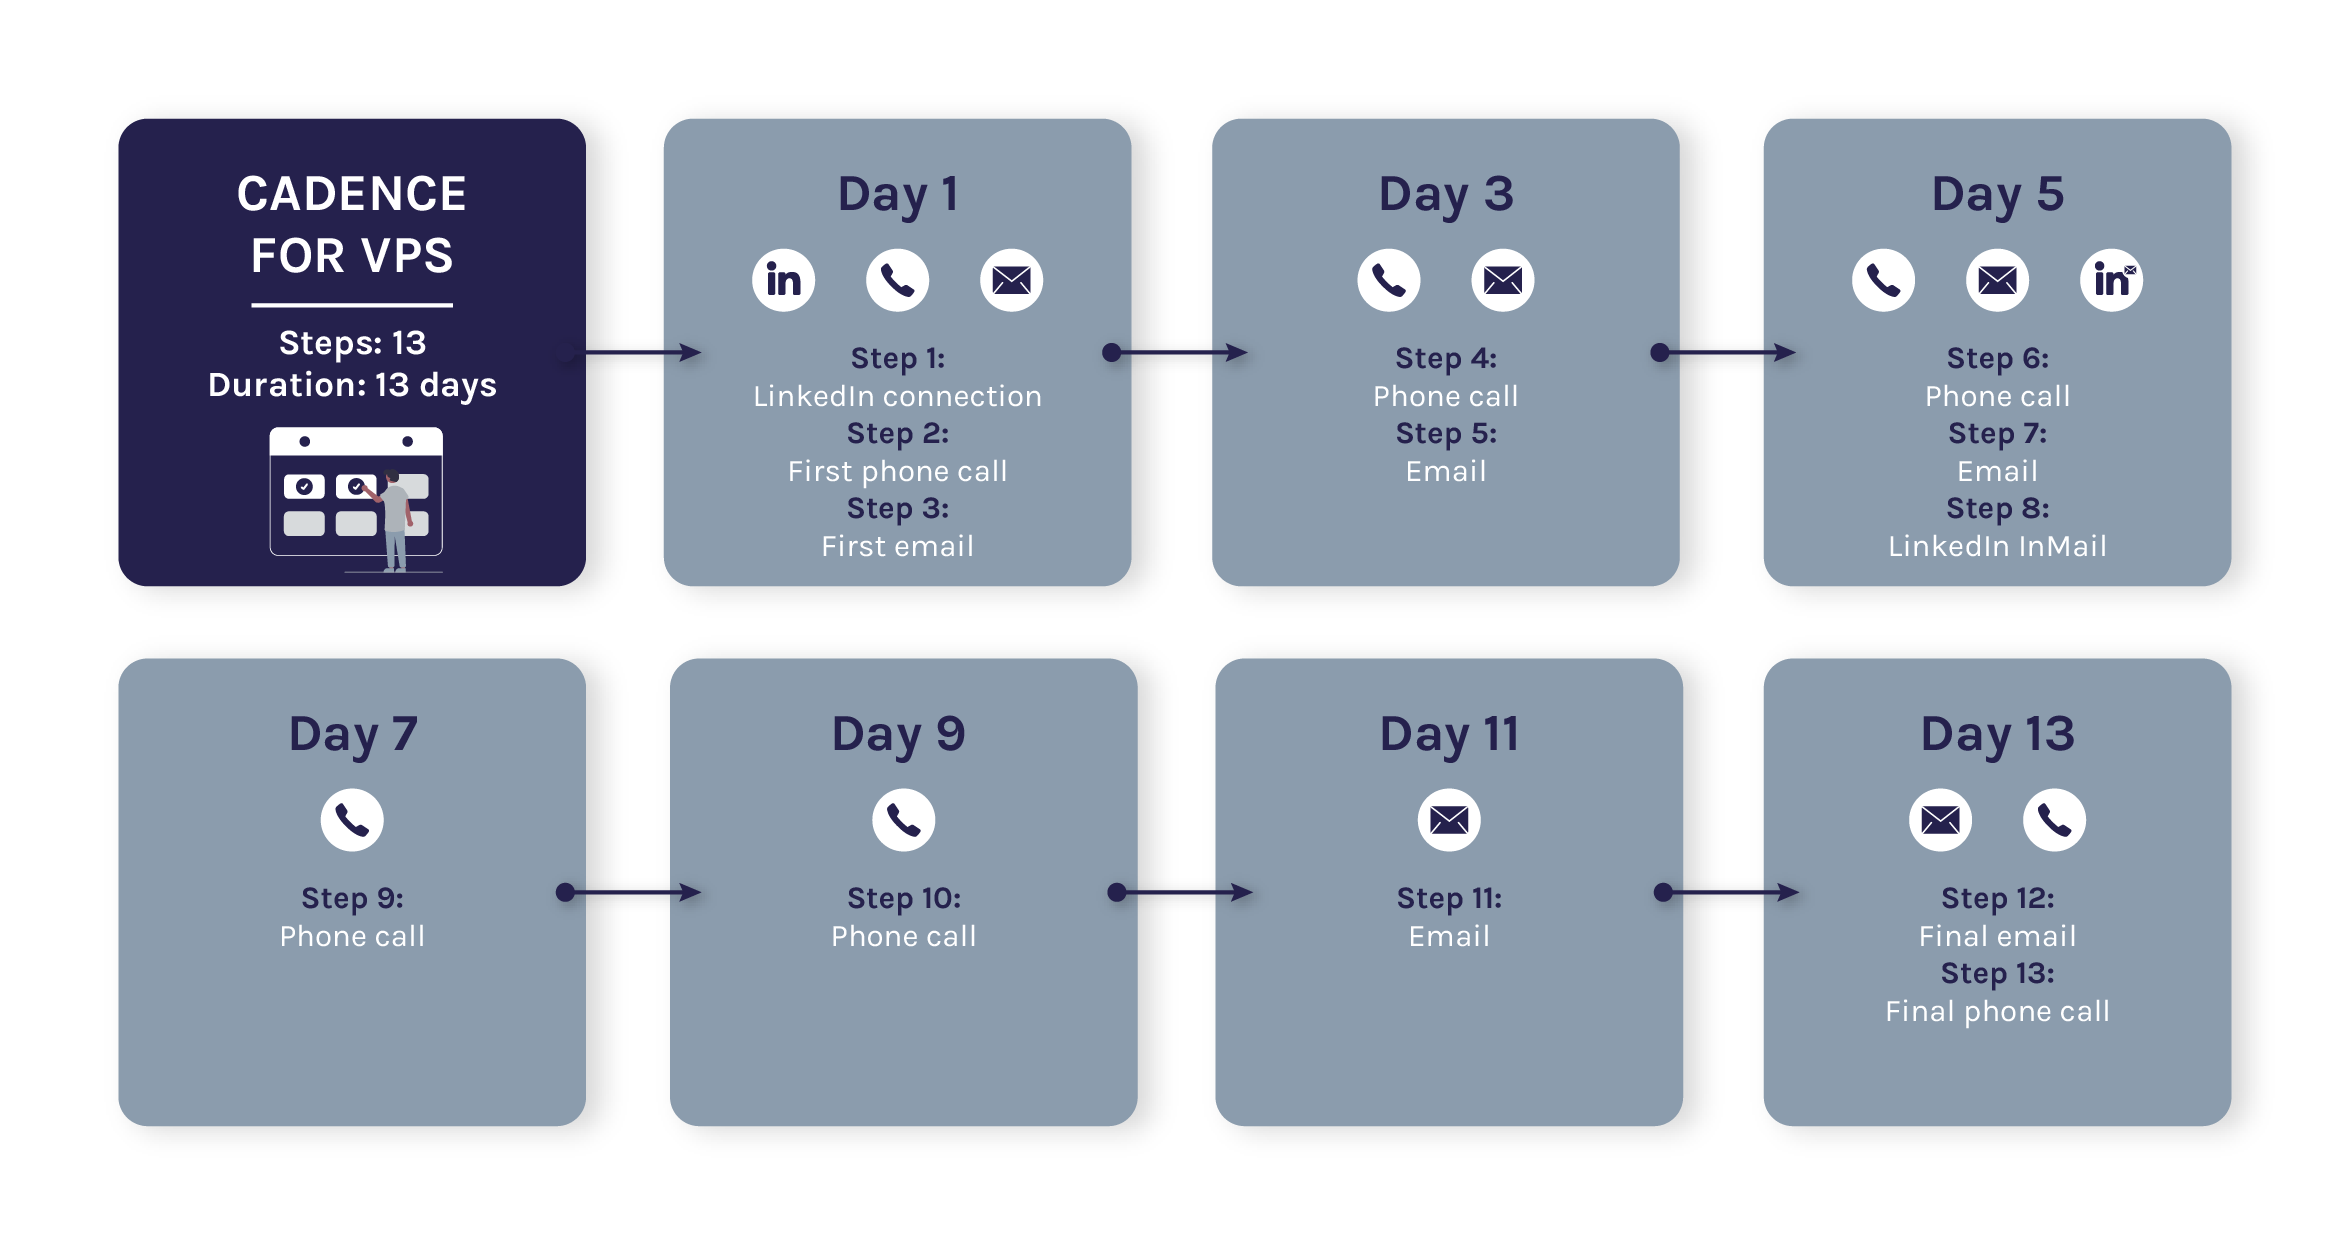 cadence-for-vps-infographic